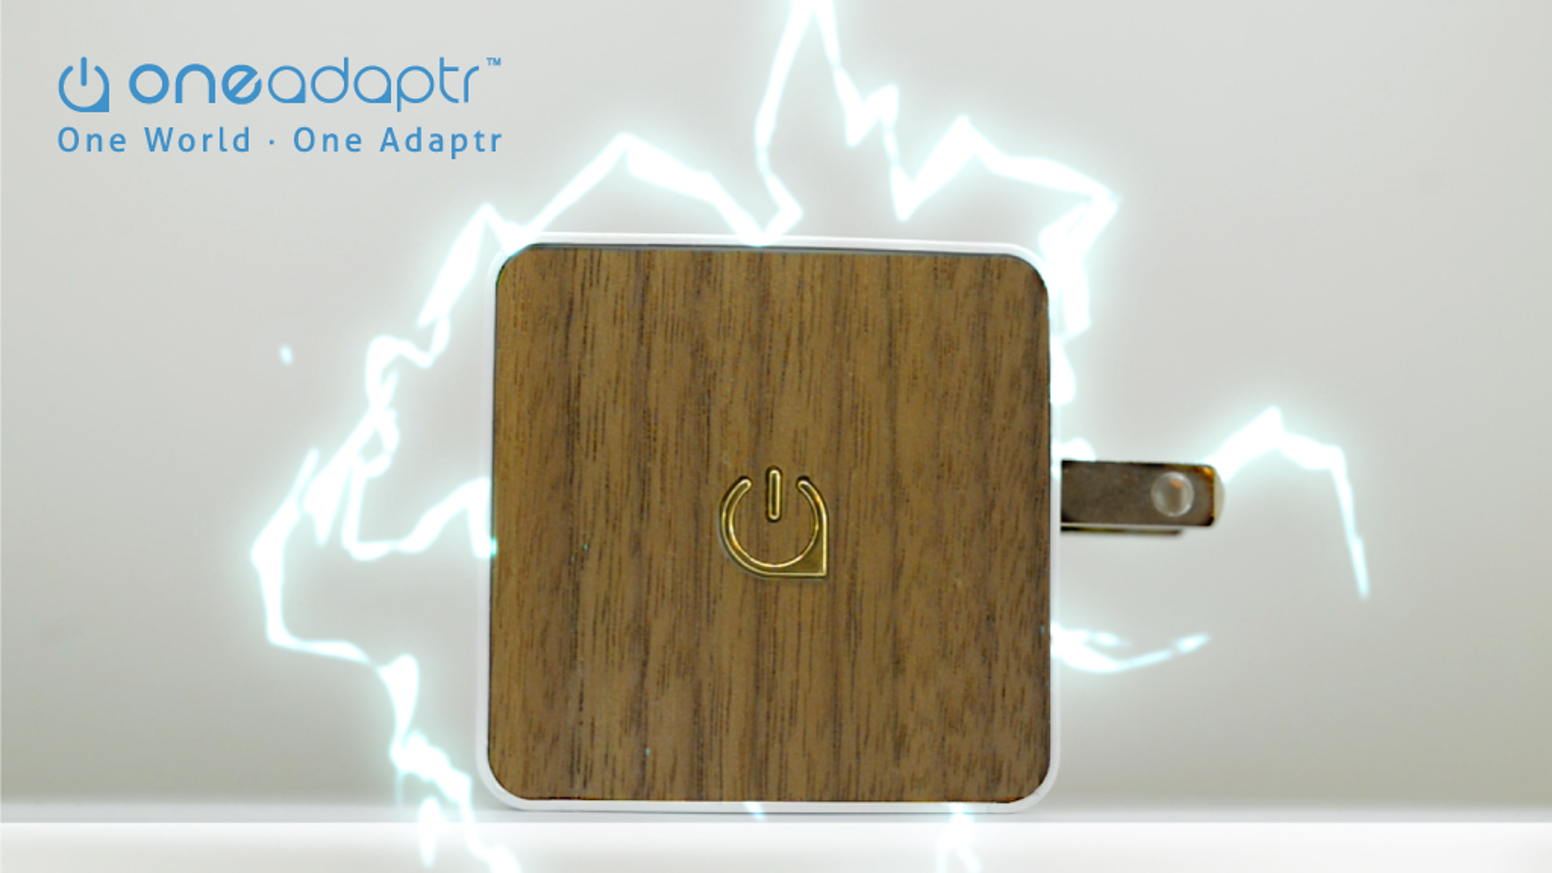 A powerhub that's all in one, smaller than a credit card, delivers 85W of power and boasts 93% efficiency.